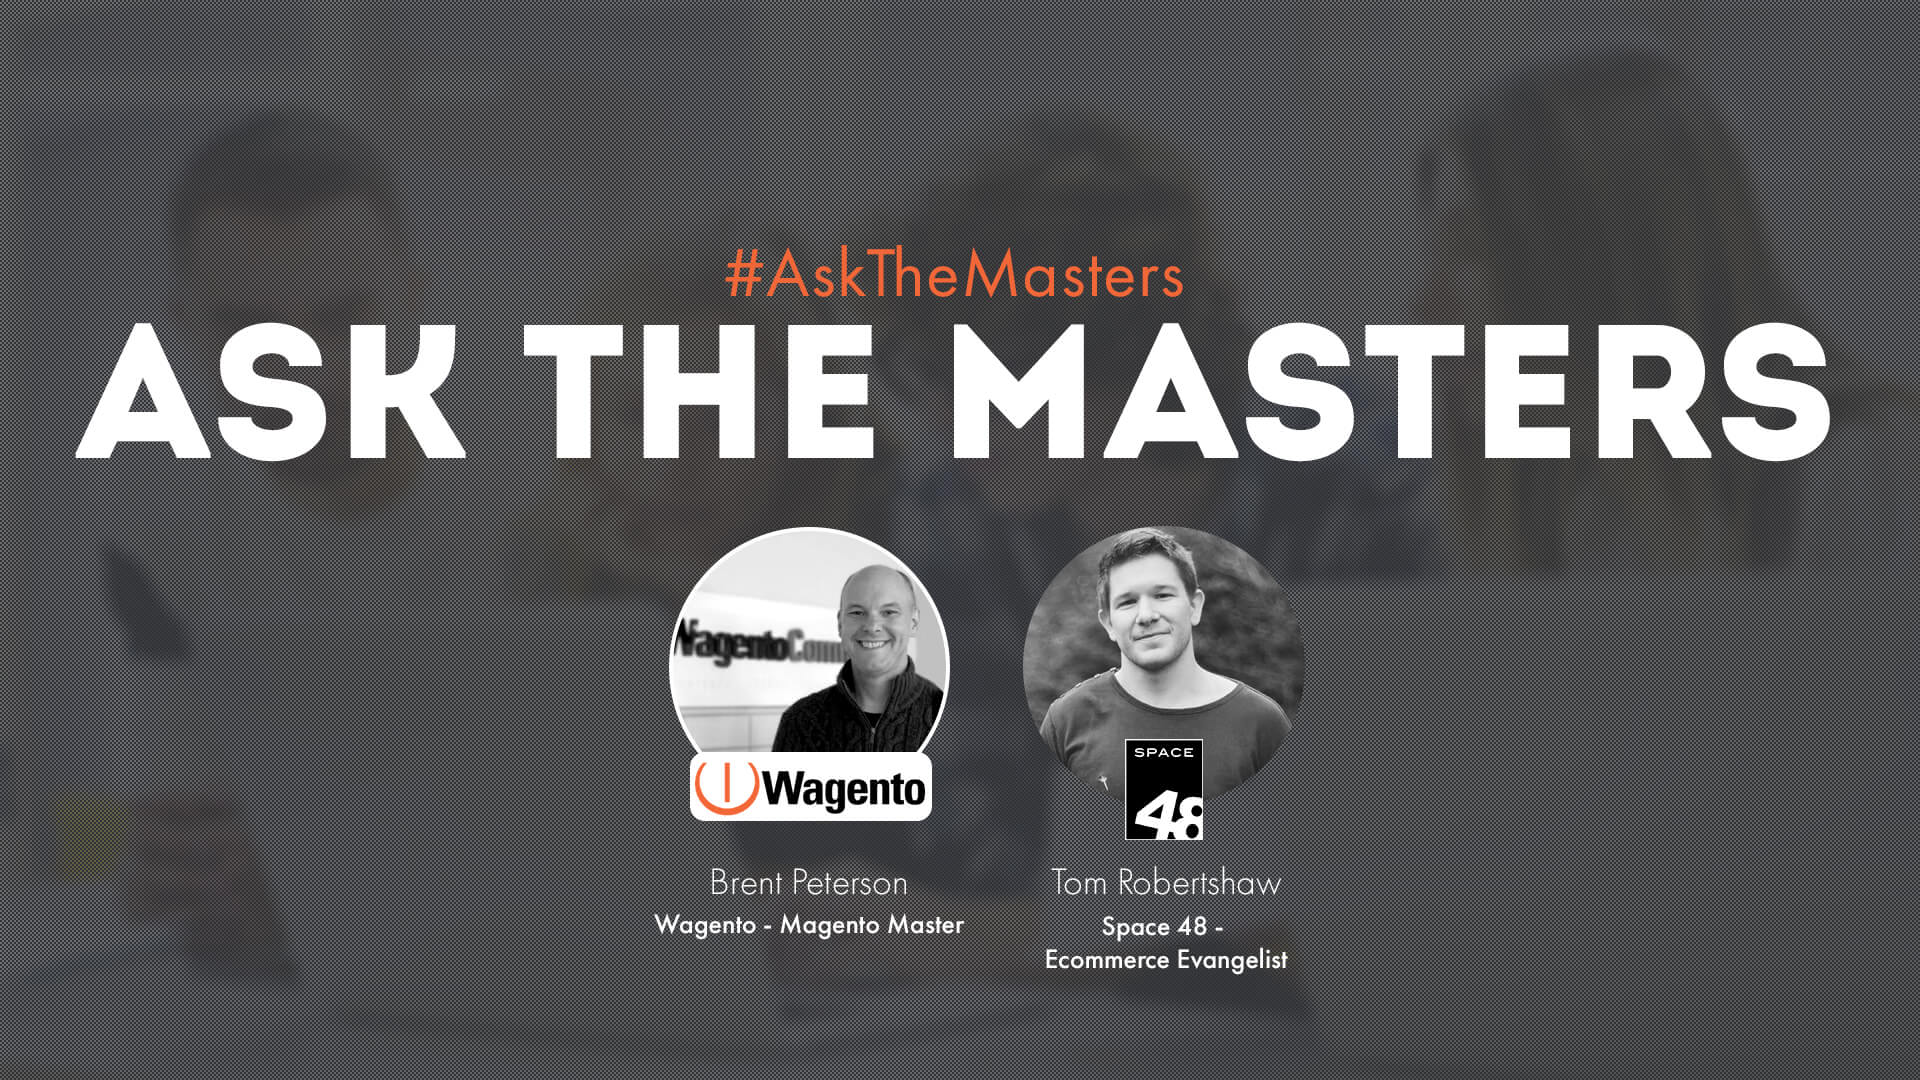 Ask the Masters April webinar co-hosts